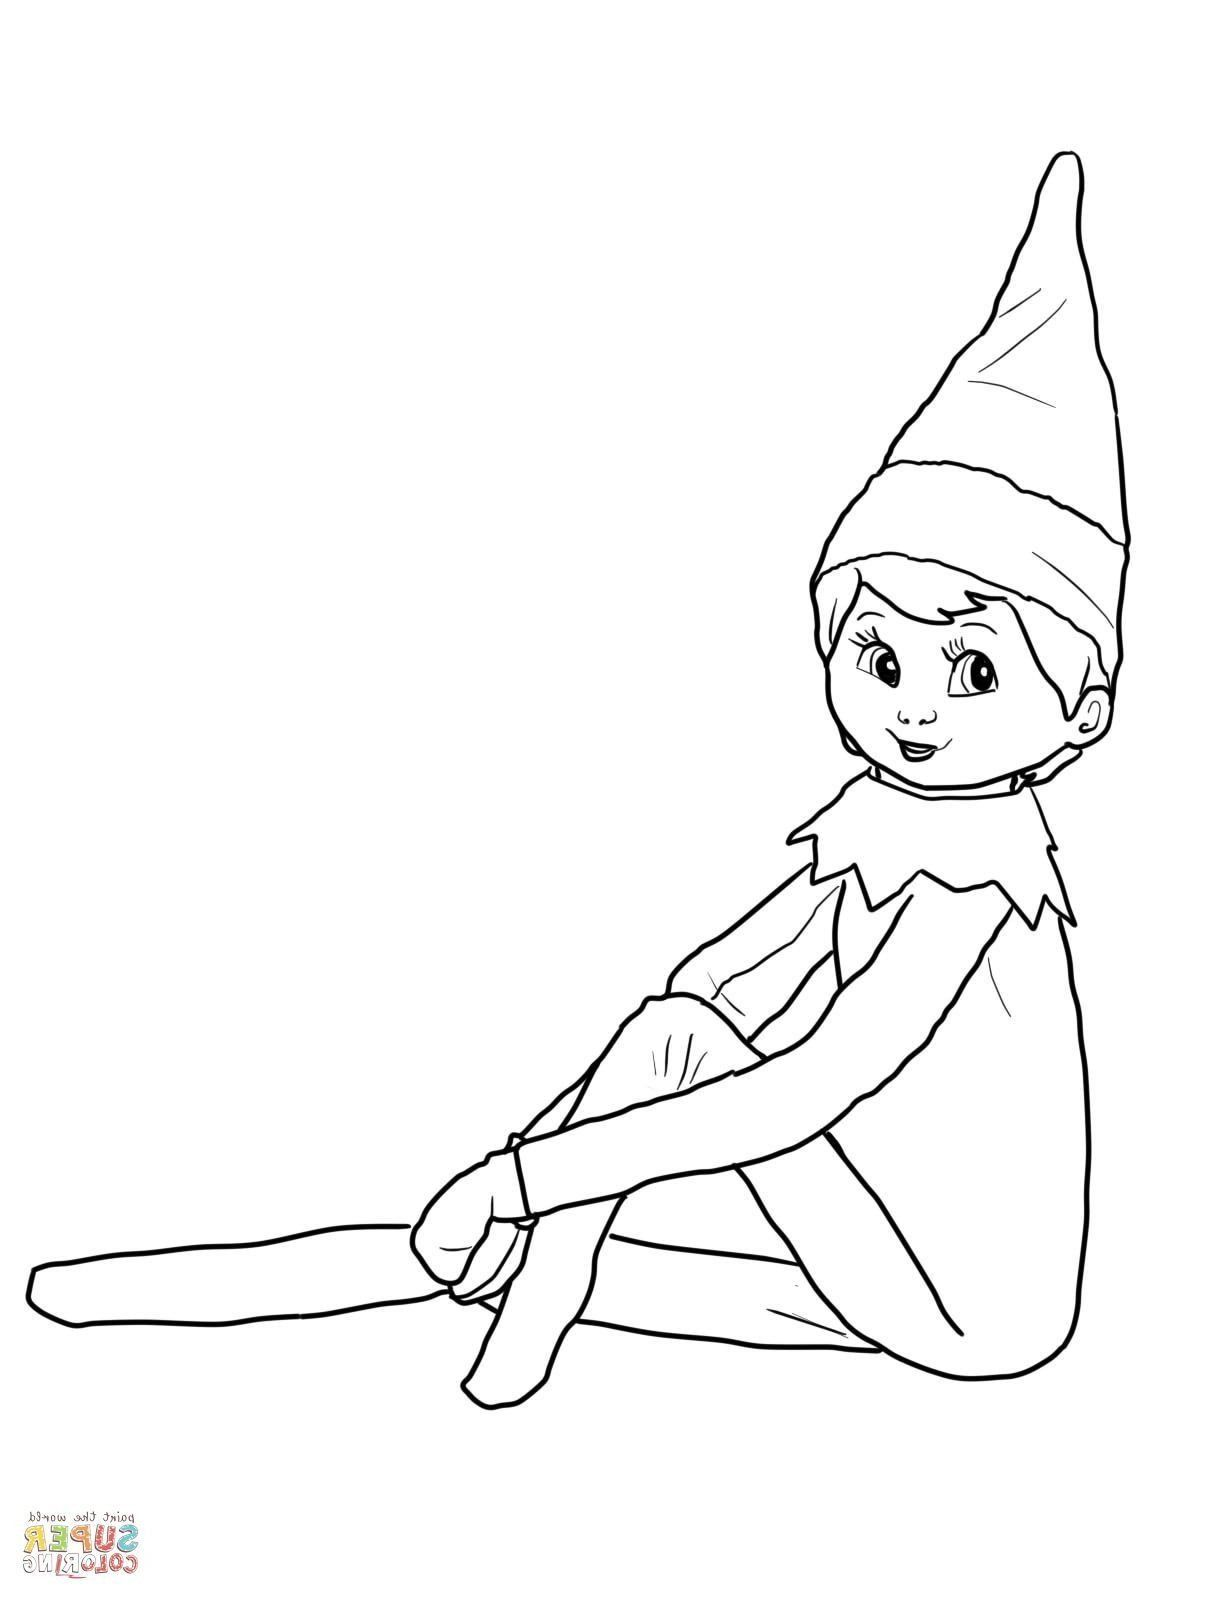 Elf On The Shelf Coloring 24 Unique Collection Elf The Shelf Coloring She Printable Christmas Coloring Pages Puppy Coloring Pages Christmas Coloring Printables